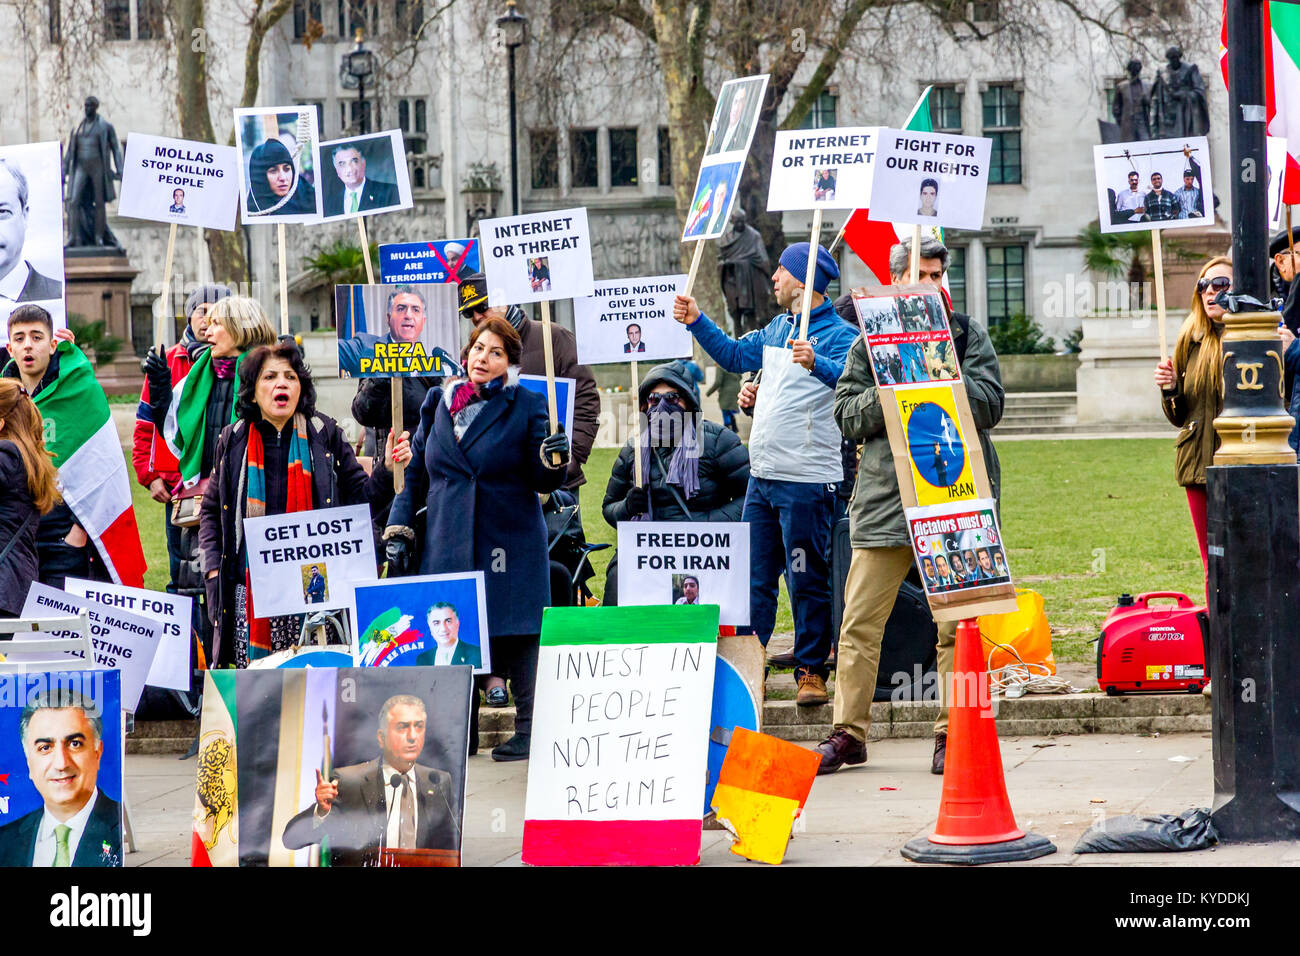 Parliament Square, London, UK. 14th Jan, 2018. Iranian protesters gather opposite the British Parliament building - Stock Image